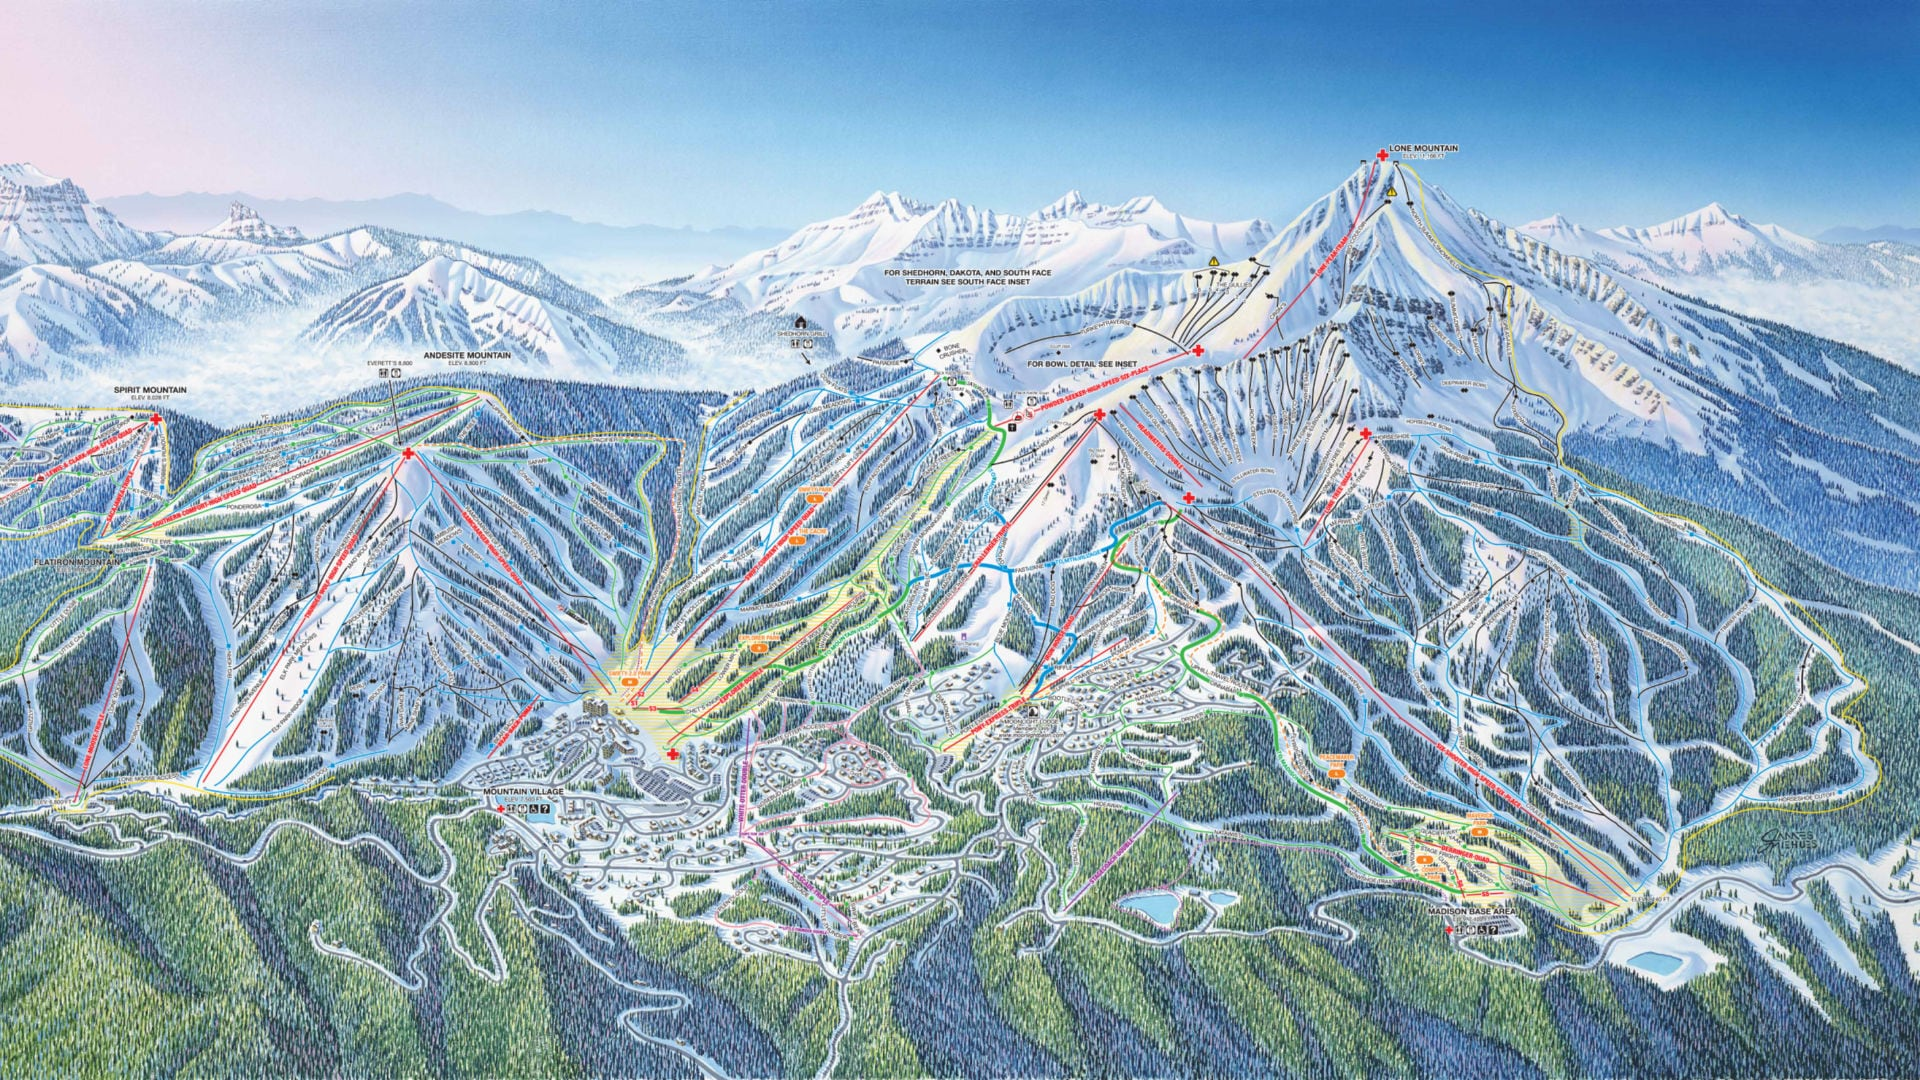 Mountain, Resort & Trail Maps | Big Sky Resort, Montana